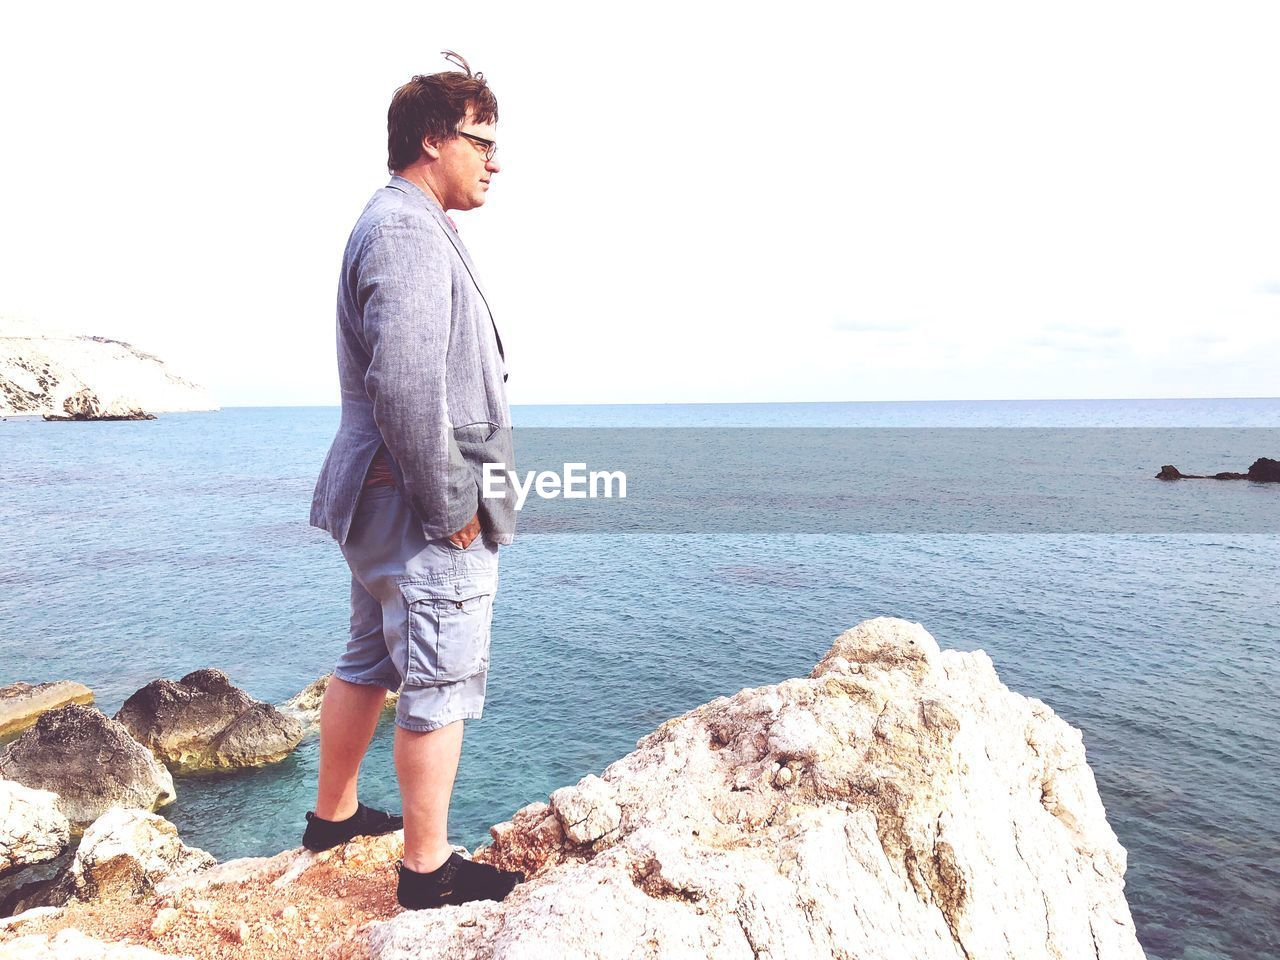 Side View Of Mature Man Looking At Sea While Standing On Rock Against Clear Sky